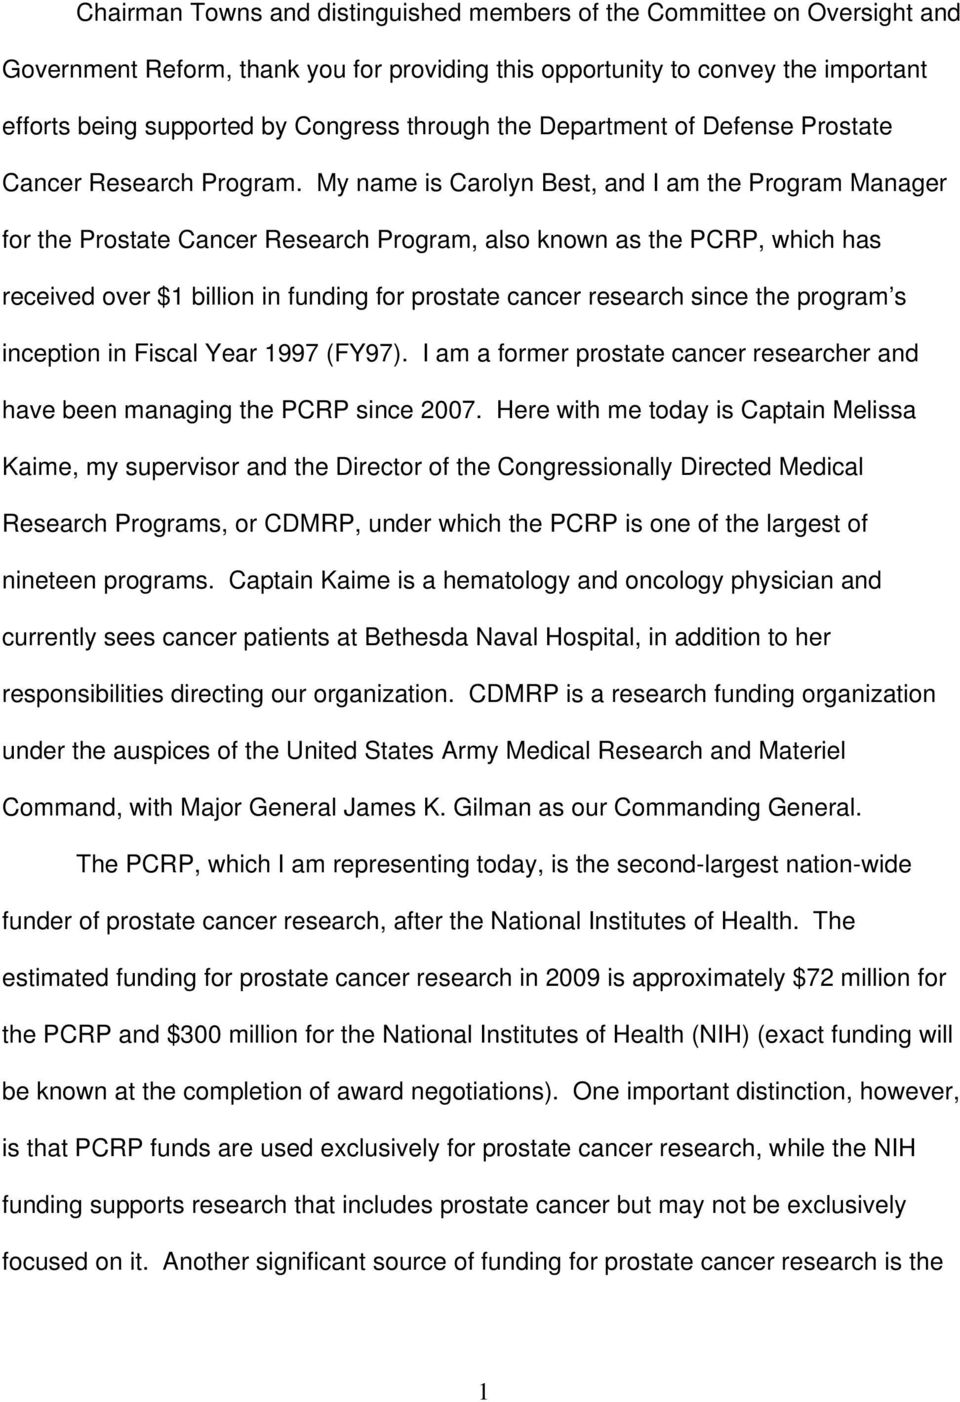 My name is Carolyn Best, and I am the Program Manager for the Prostate Cancer Research Program, also known as the PCRP, which has received over $1 billion in funding for prostate cancer research